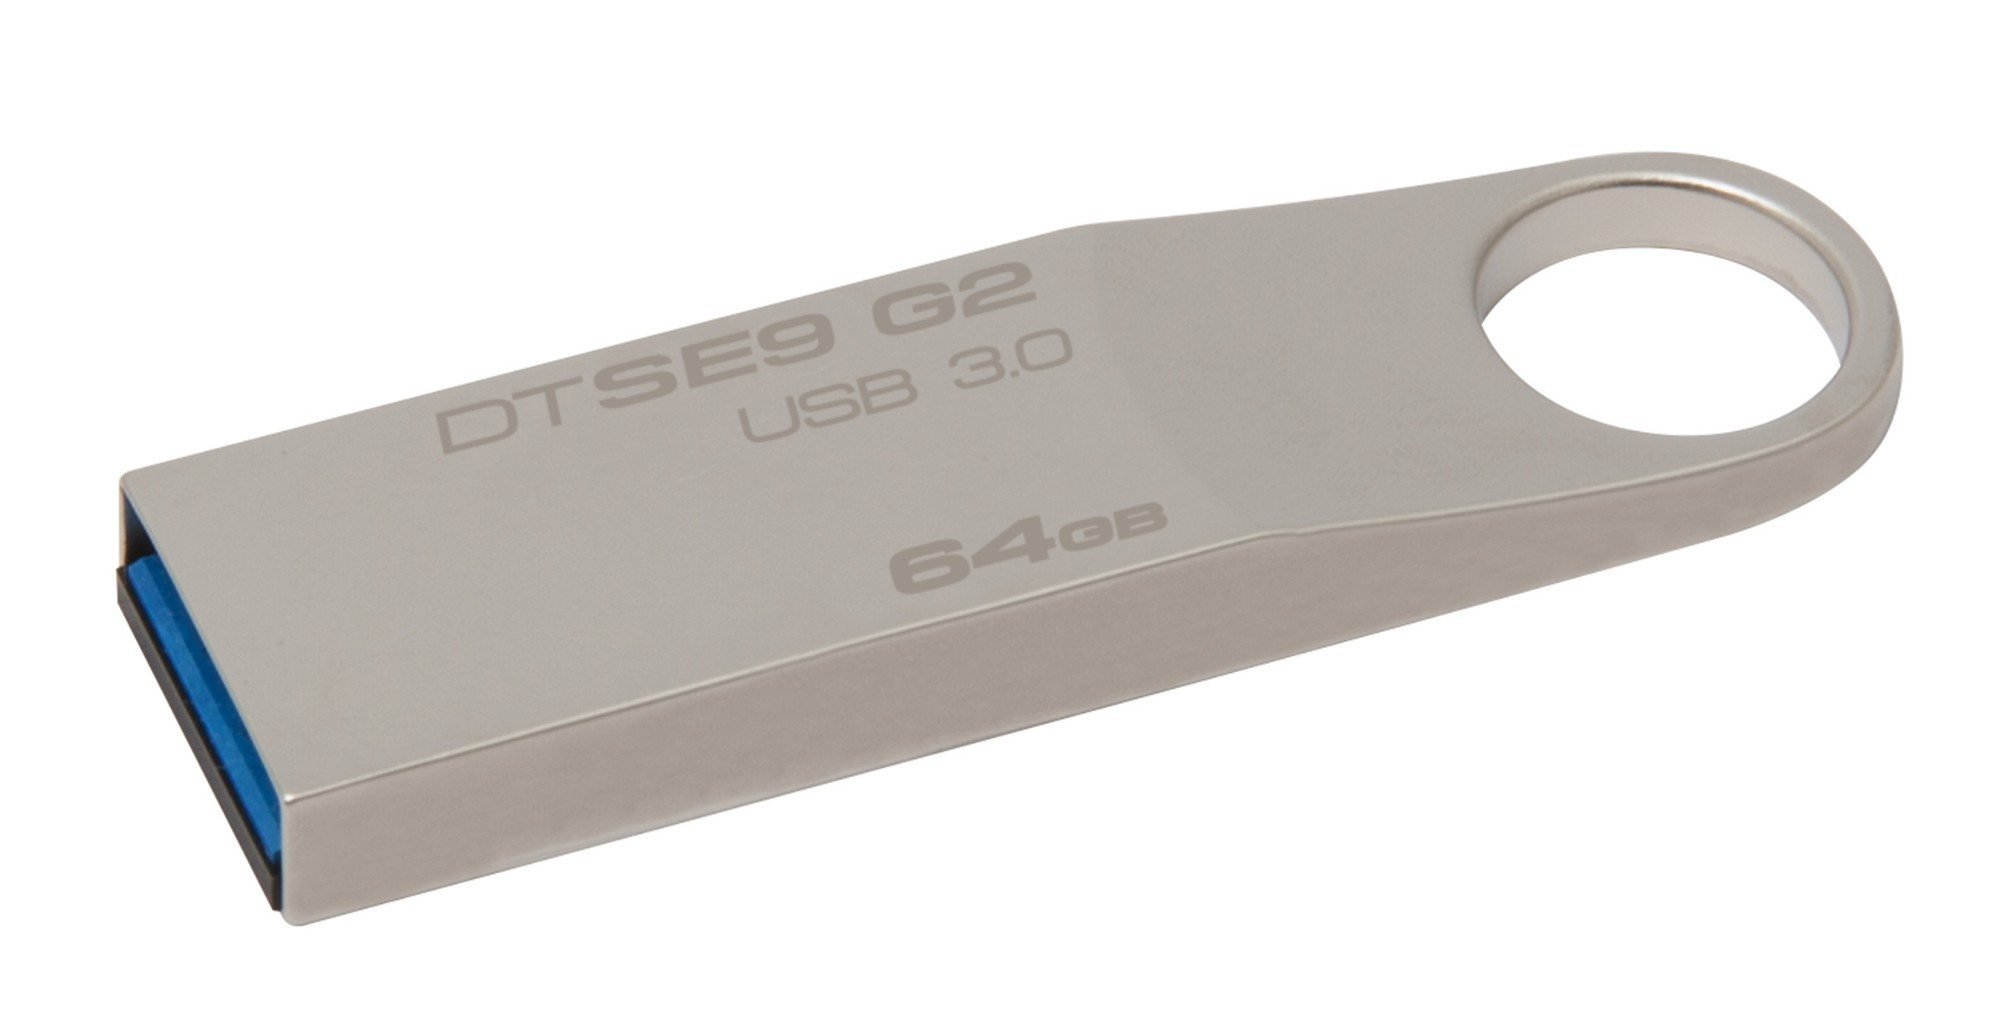 Kingston Technology DataTraveler SE9 G2 64GB unidad flash USB USB tipo A 3.2 Gen 1 (3.1 Gen 1) Plata